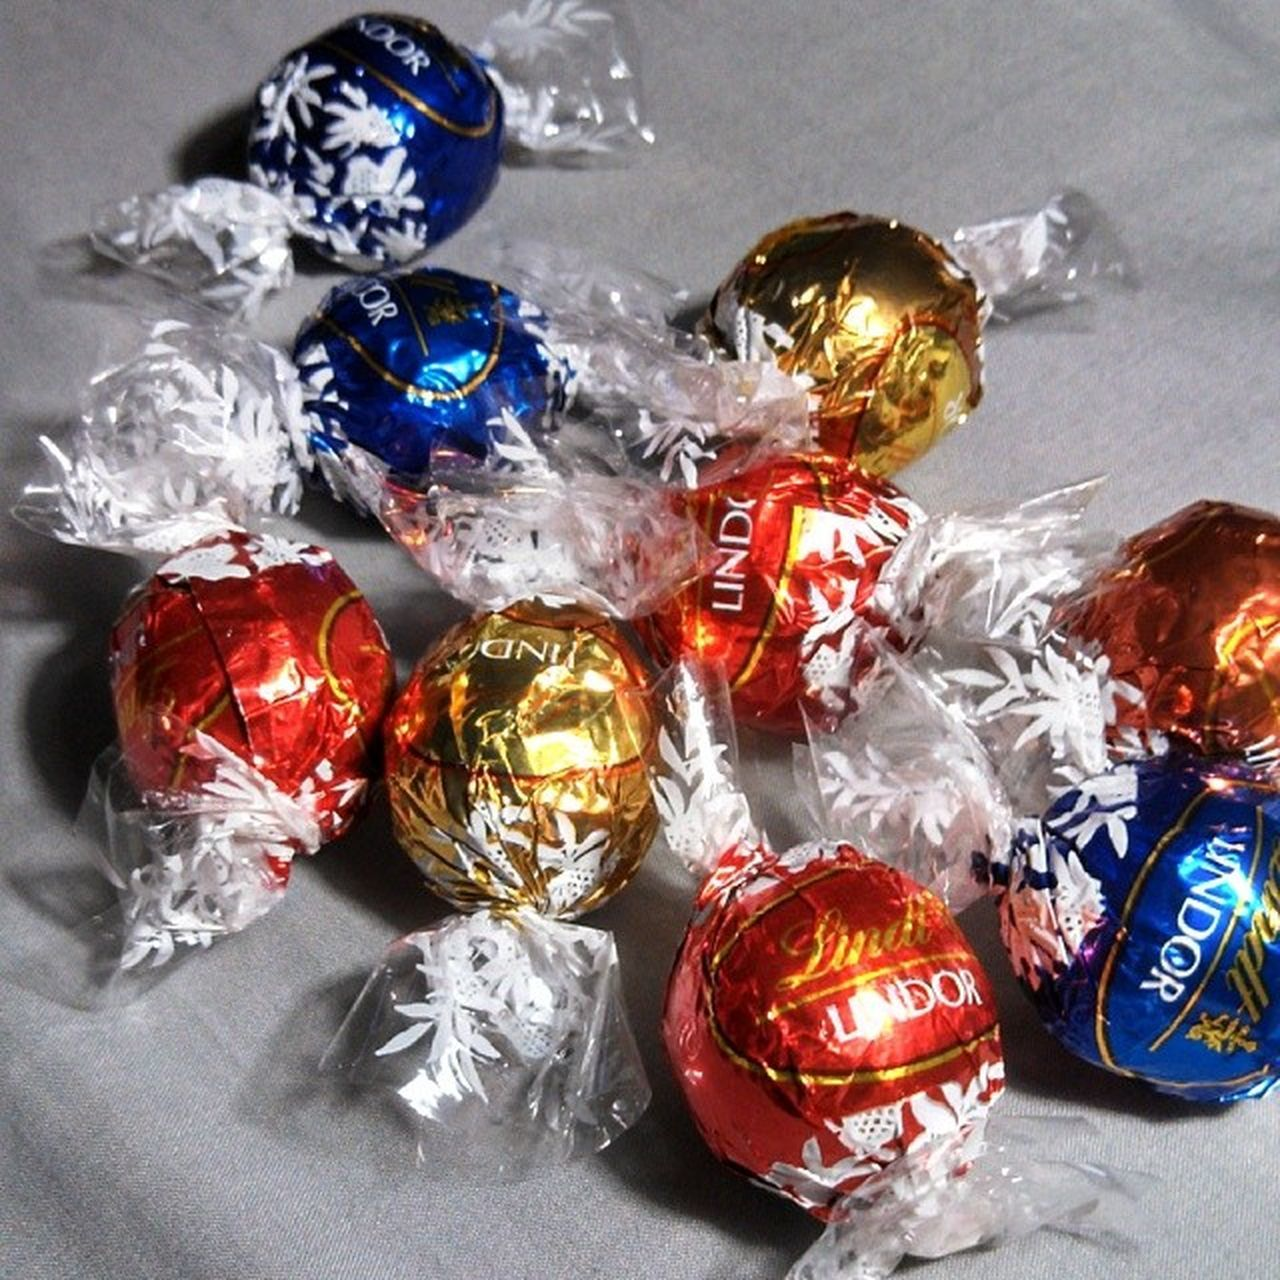 Yummy Chocolates Chocgoodness Myweakness Foodporn Delicious Nomnomnom Likeforlike Lindt Lindor Chrissypresent Red Blue Shiney Gold Igroftheday Instadaily Followforfollow Instapopular Instafamous Igfood